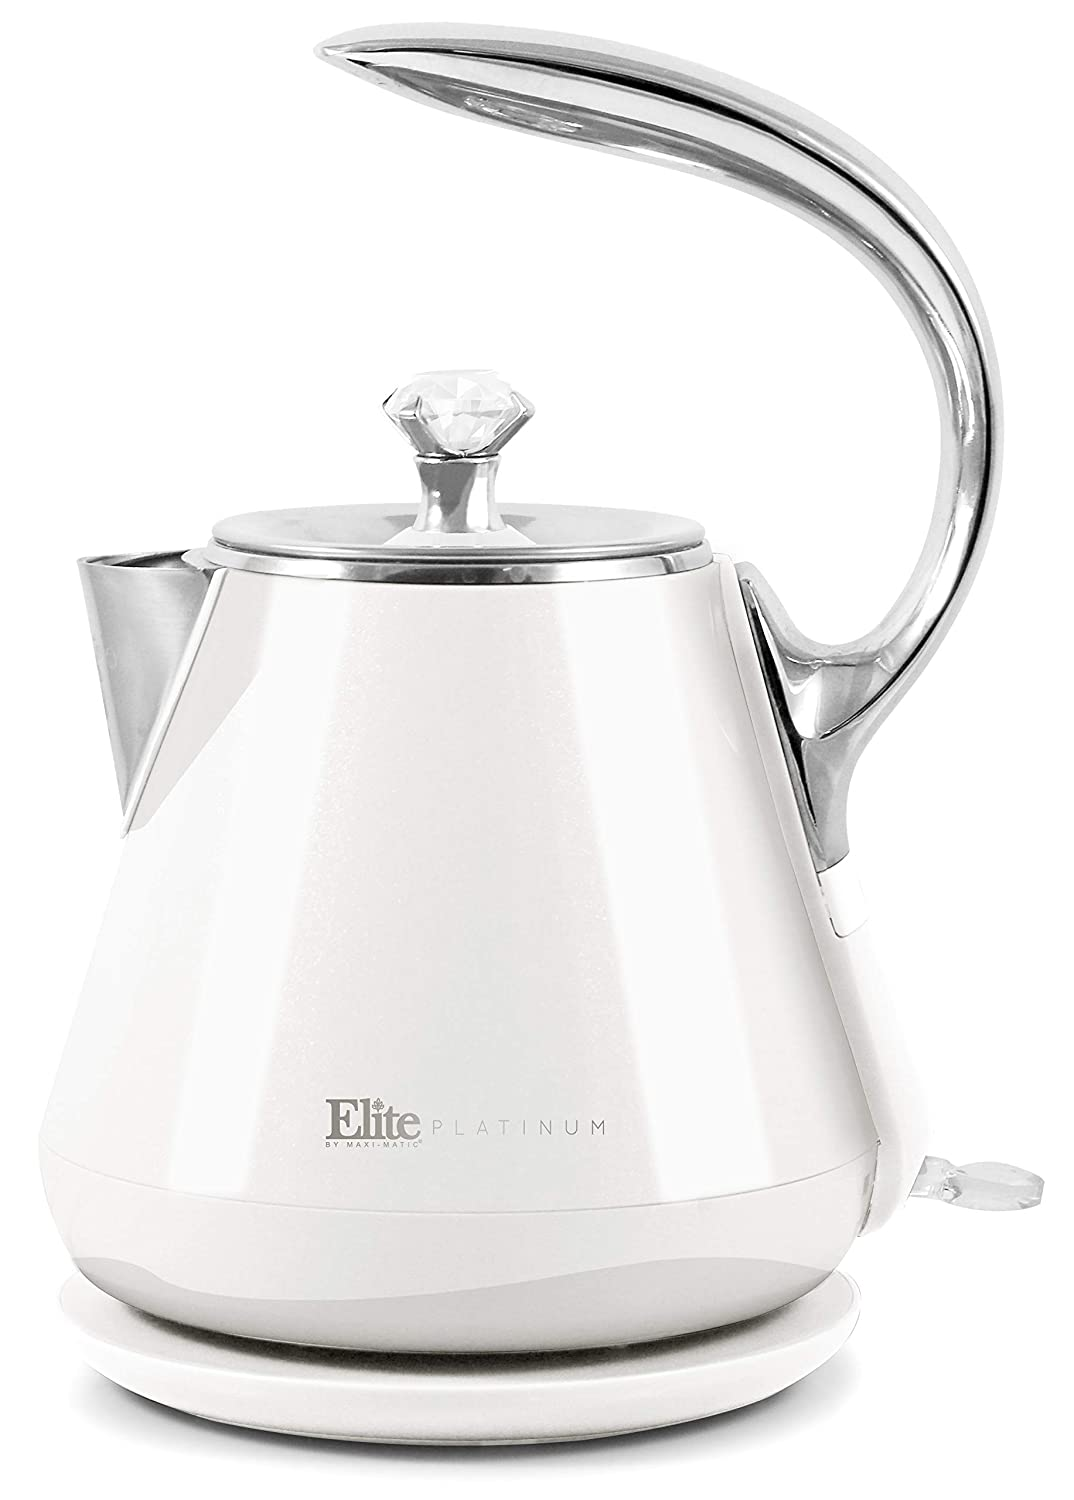 Maxi Matic EKT-1203W Cool Touch, Auto Shut off Fast Boiling Water, 1.2 L, White